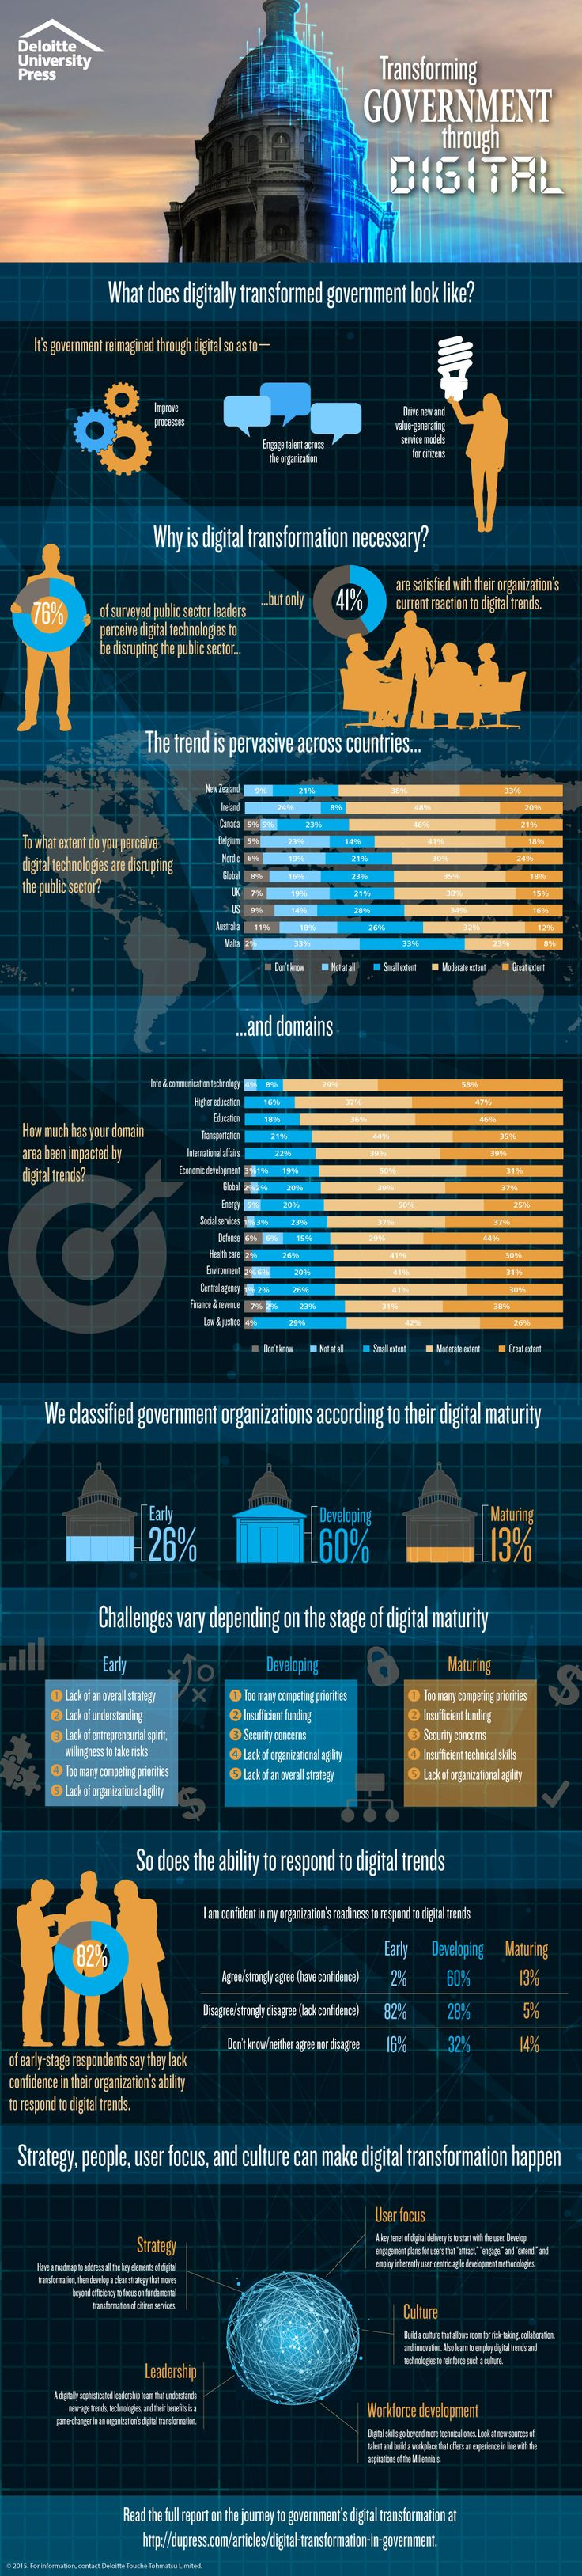 The journey to government's digital transformation  http://dupress.com/articles/digital-transformation-in-government/